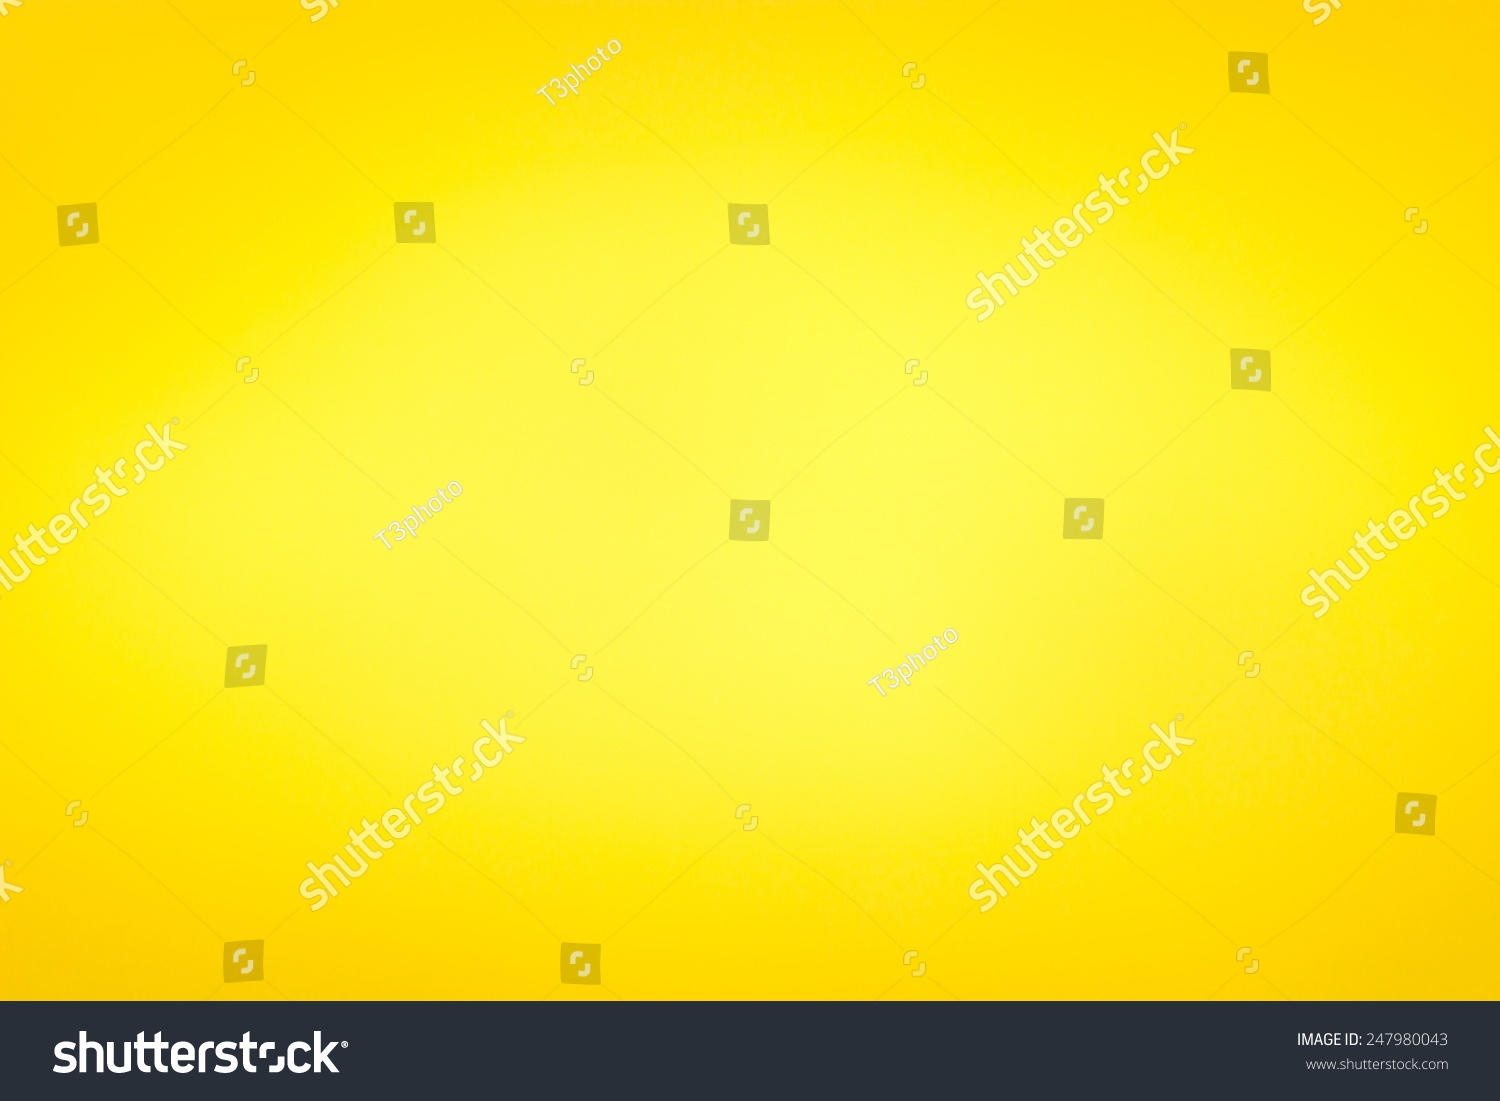 colorful blurred backgrounds / yellow background #247980043